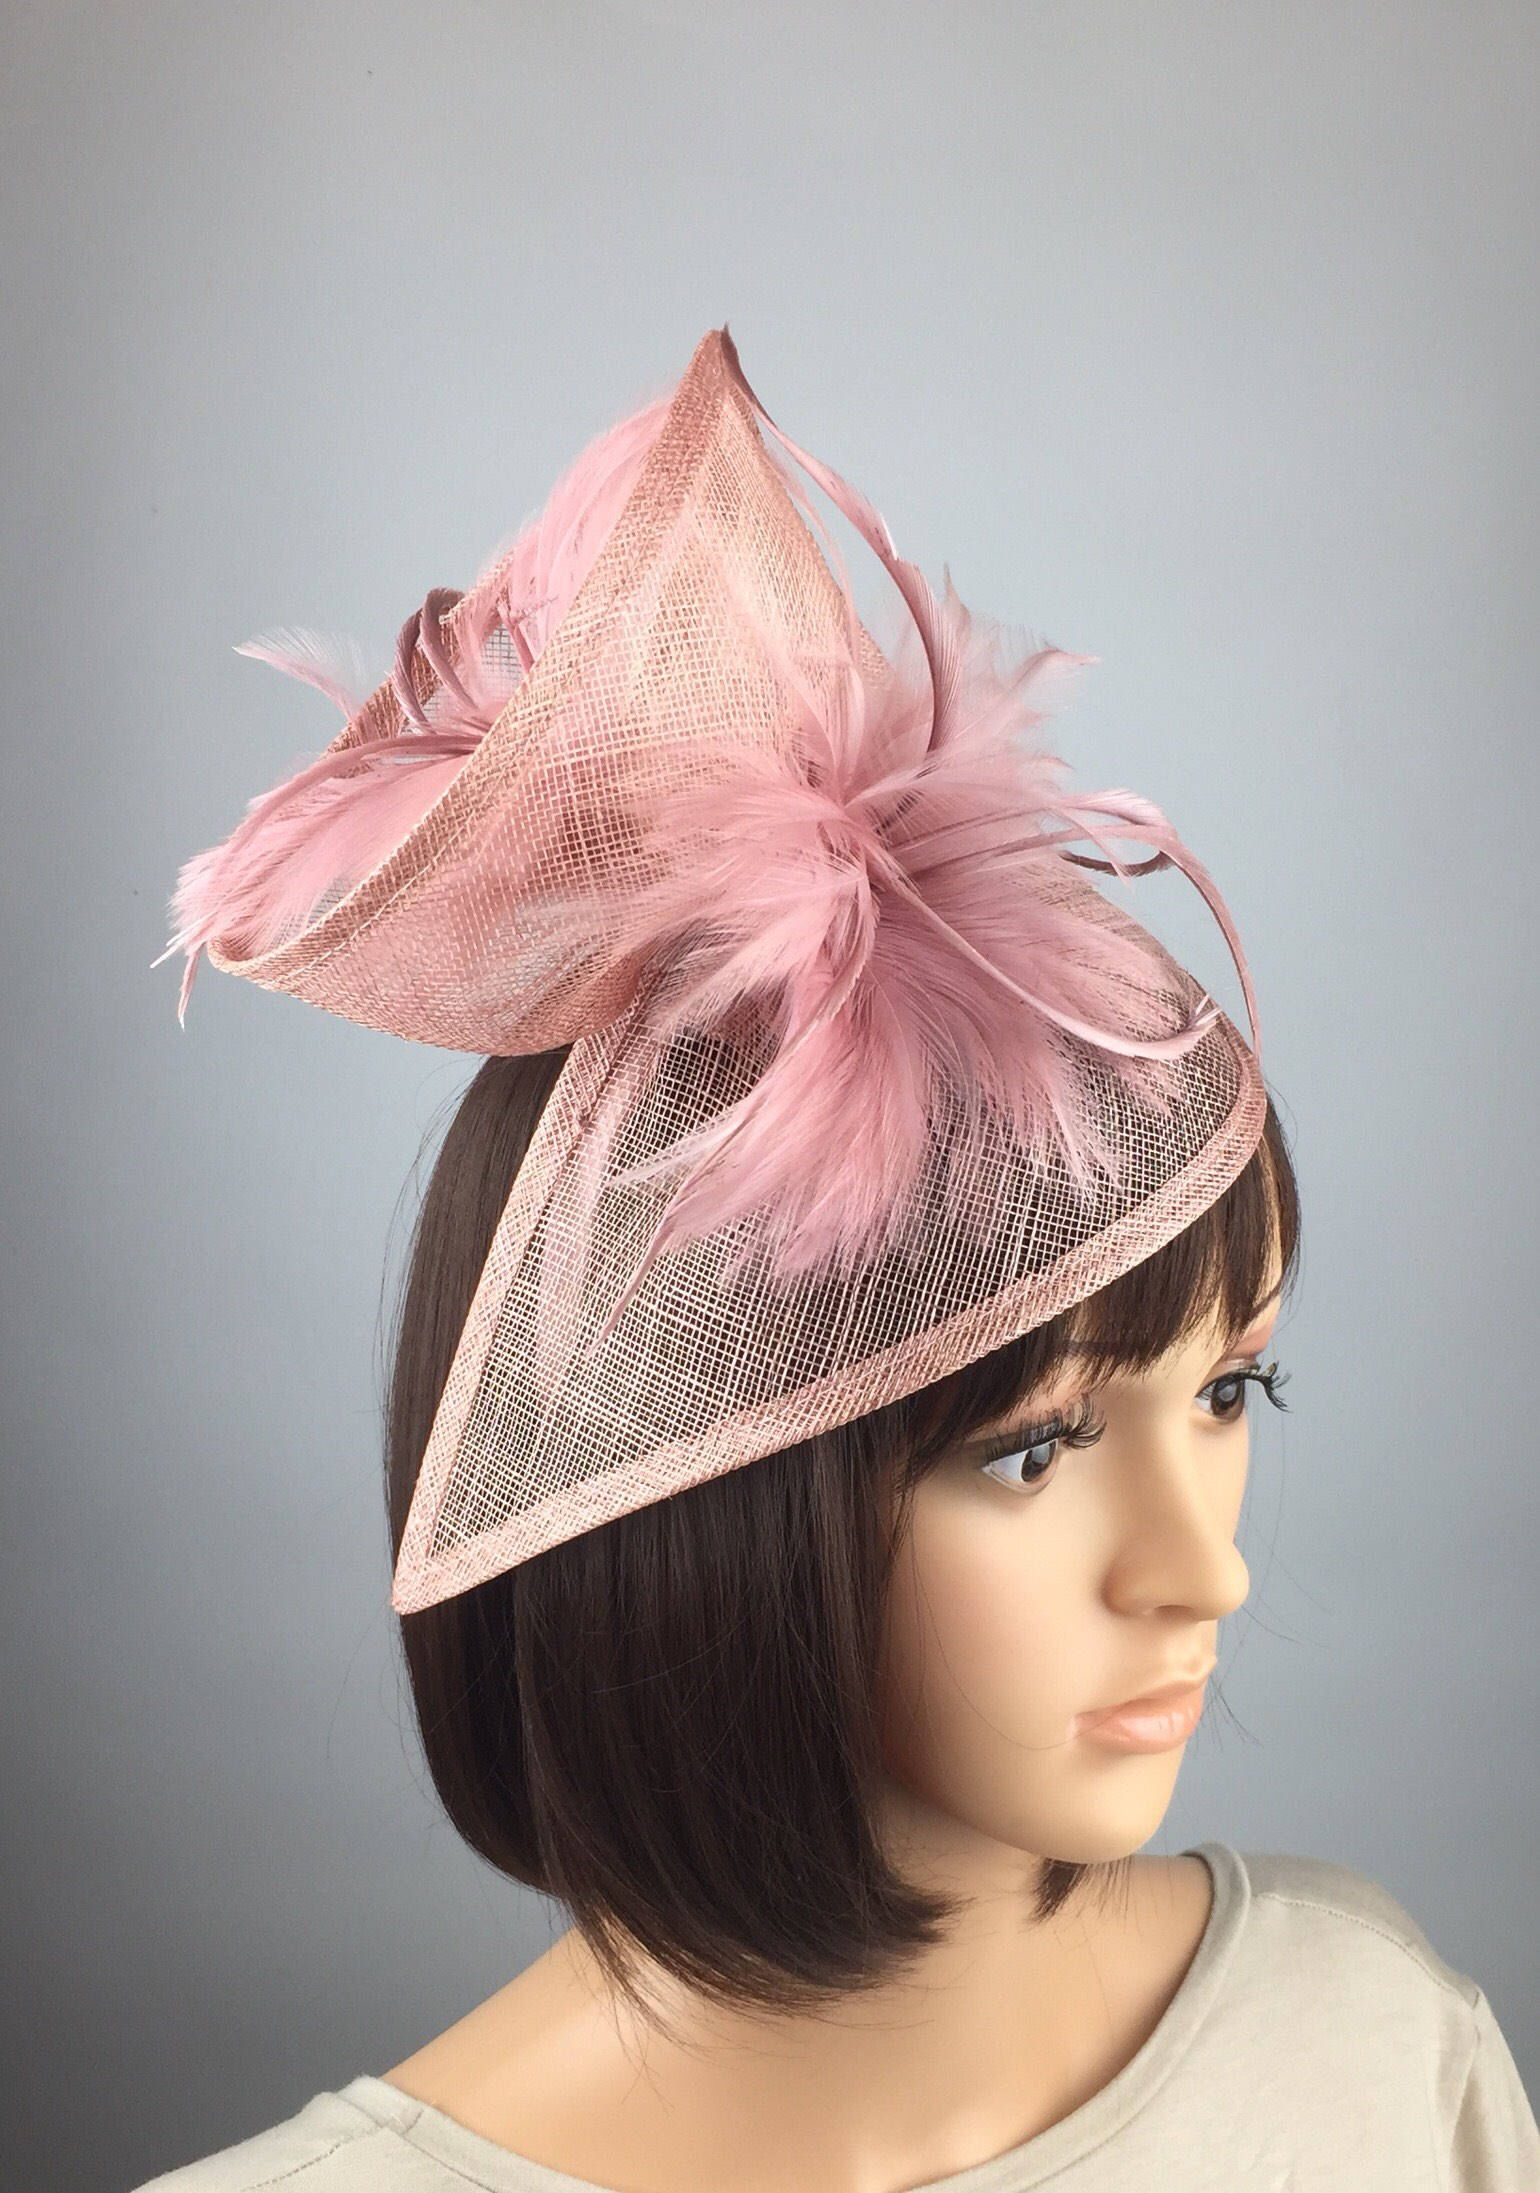 Excited To Share The Latest Addition My Etsy Blush Pink Fascinator Wedding Mother Of Bride Hatinator Las Day Ascot Races Occasion Event